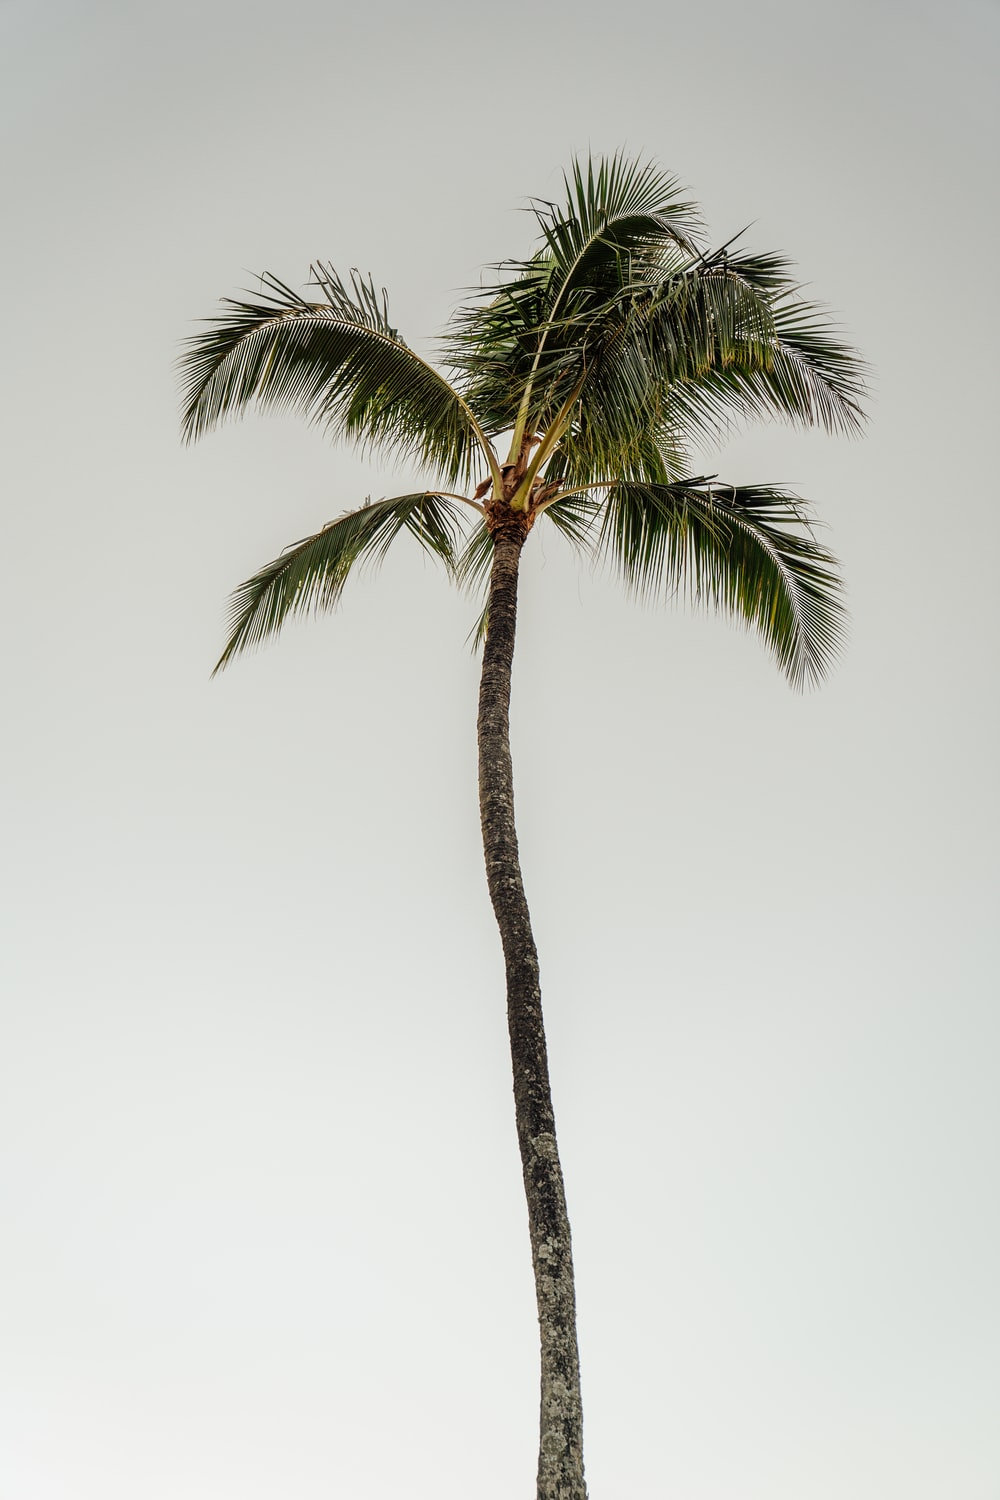 coconut tree during daytime